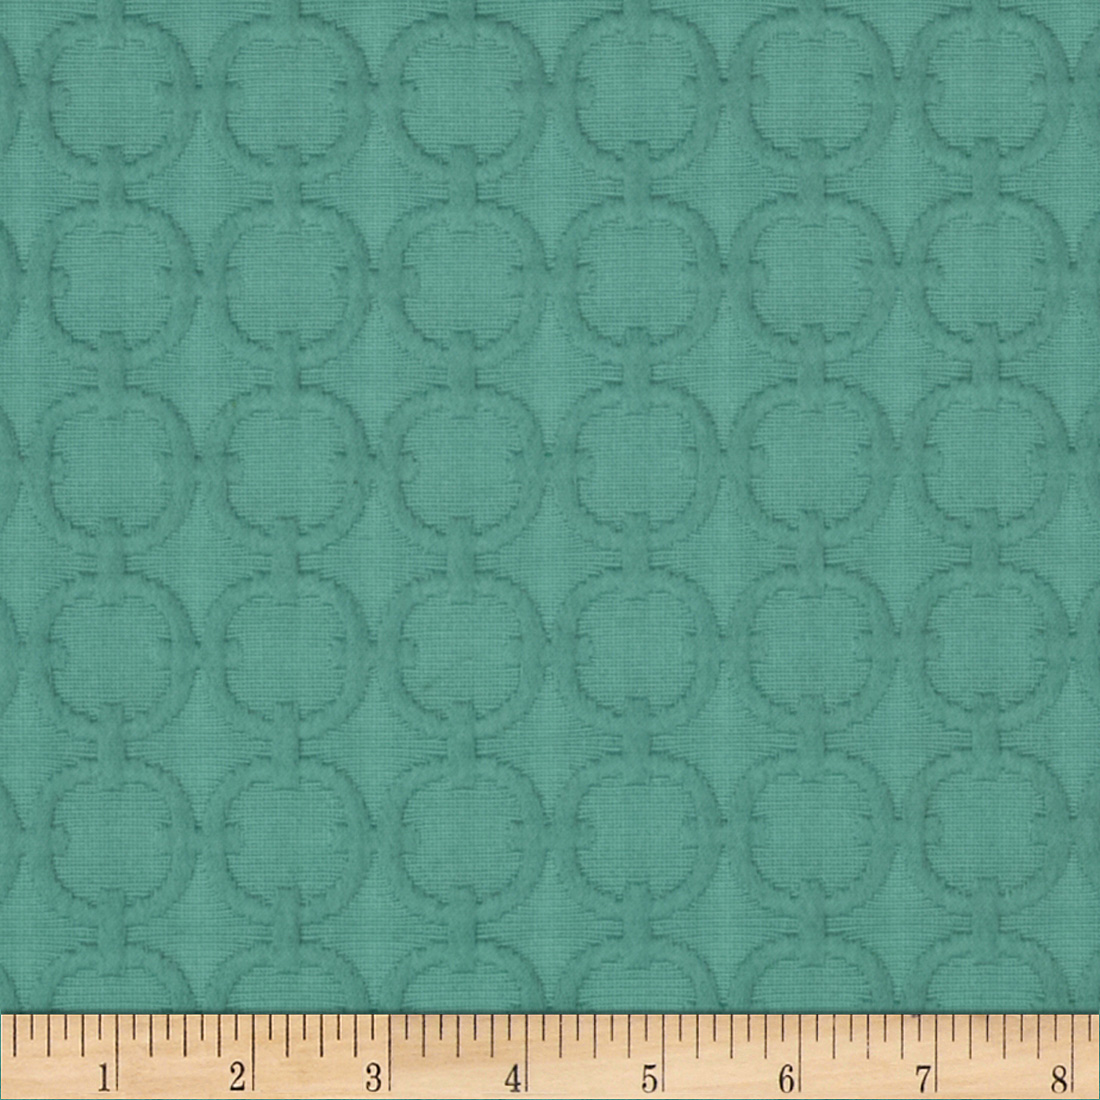 Waverly Full Circle Matelasse Turquoise Fabric